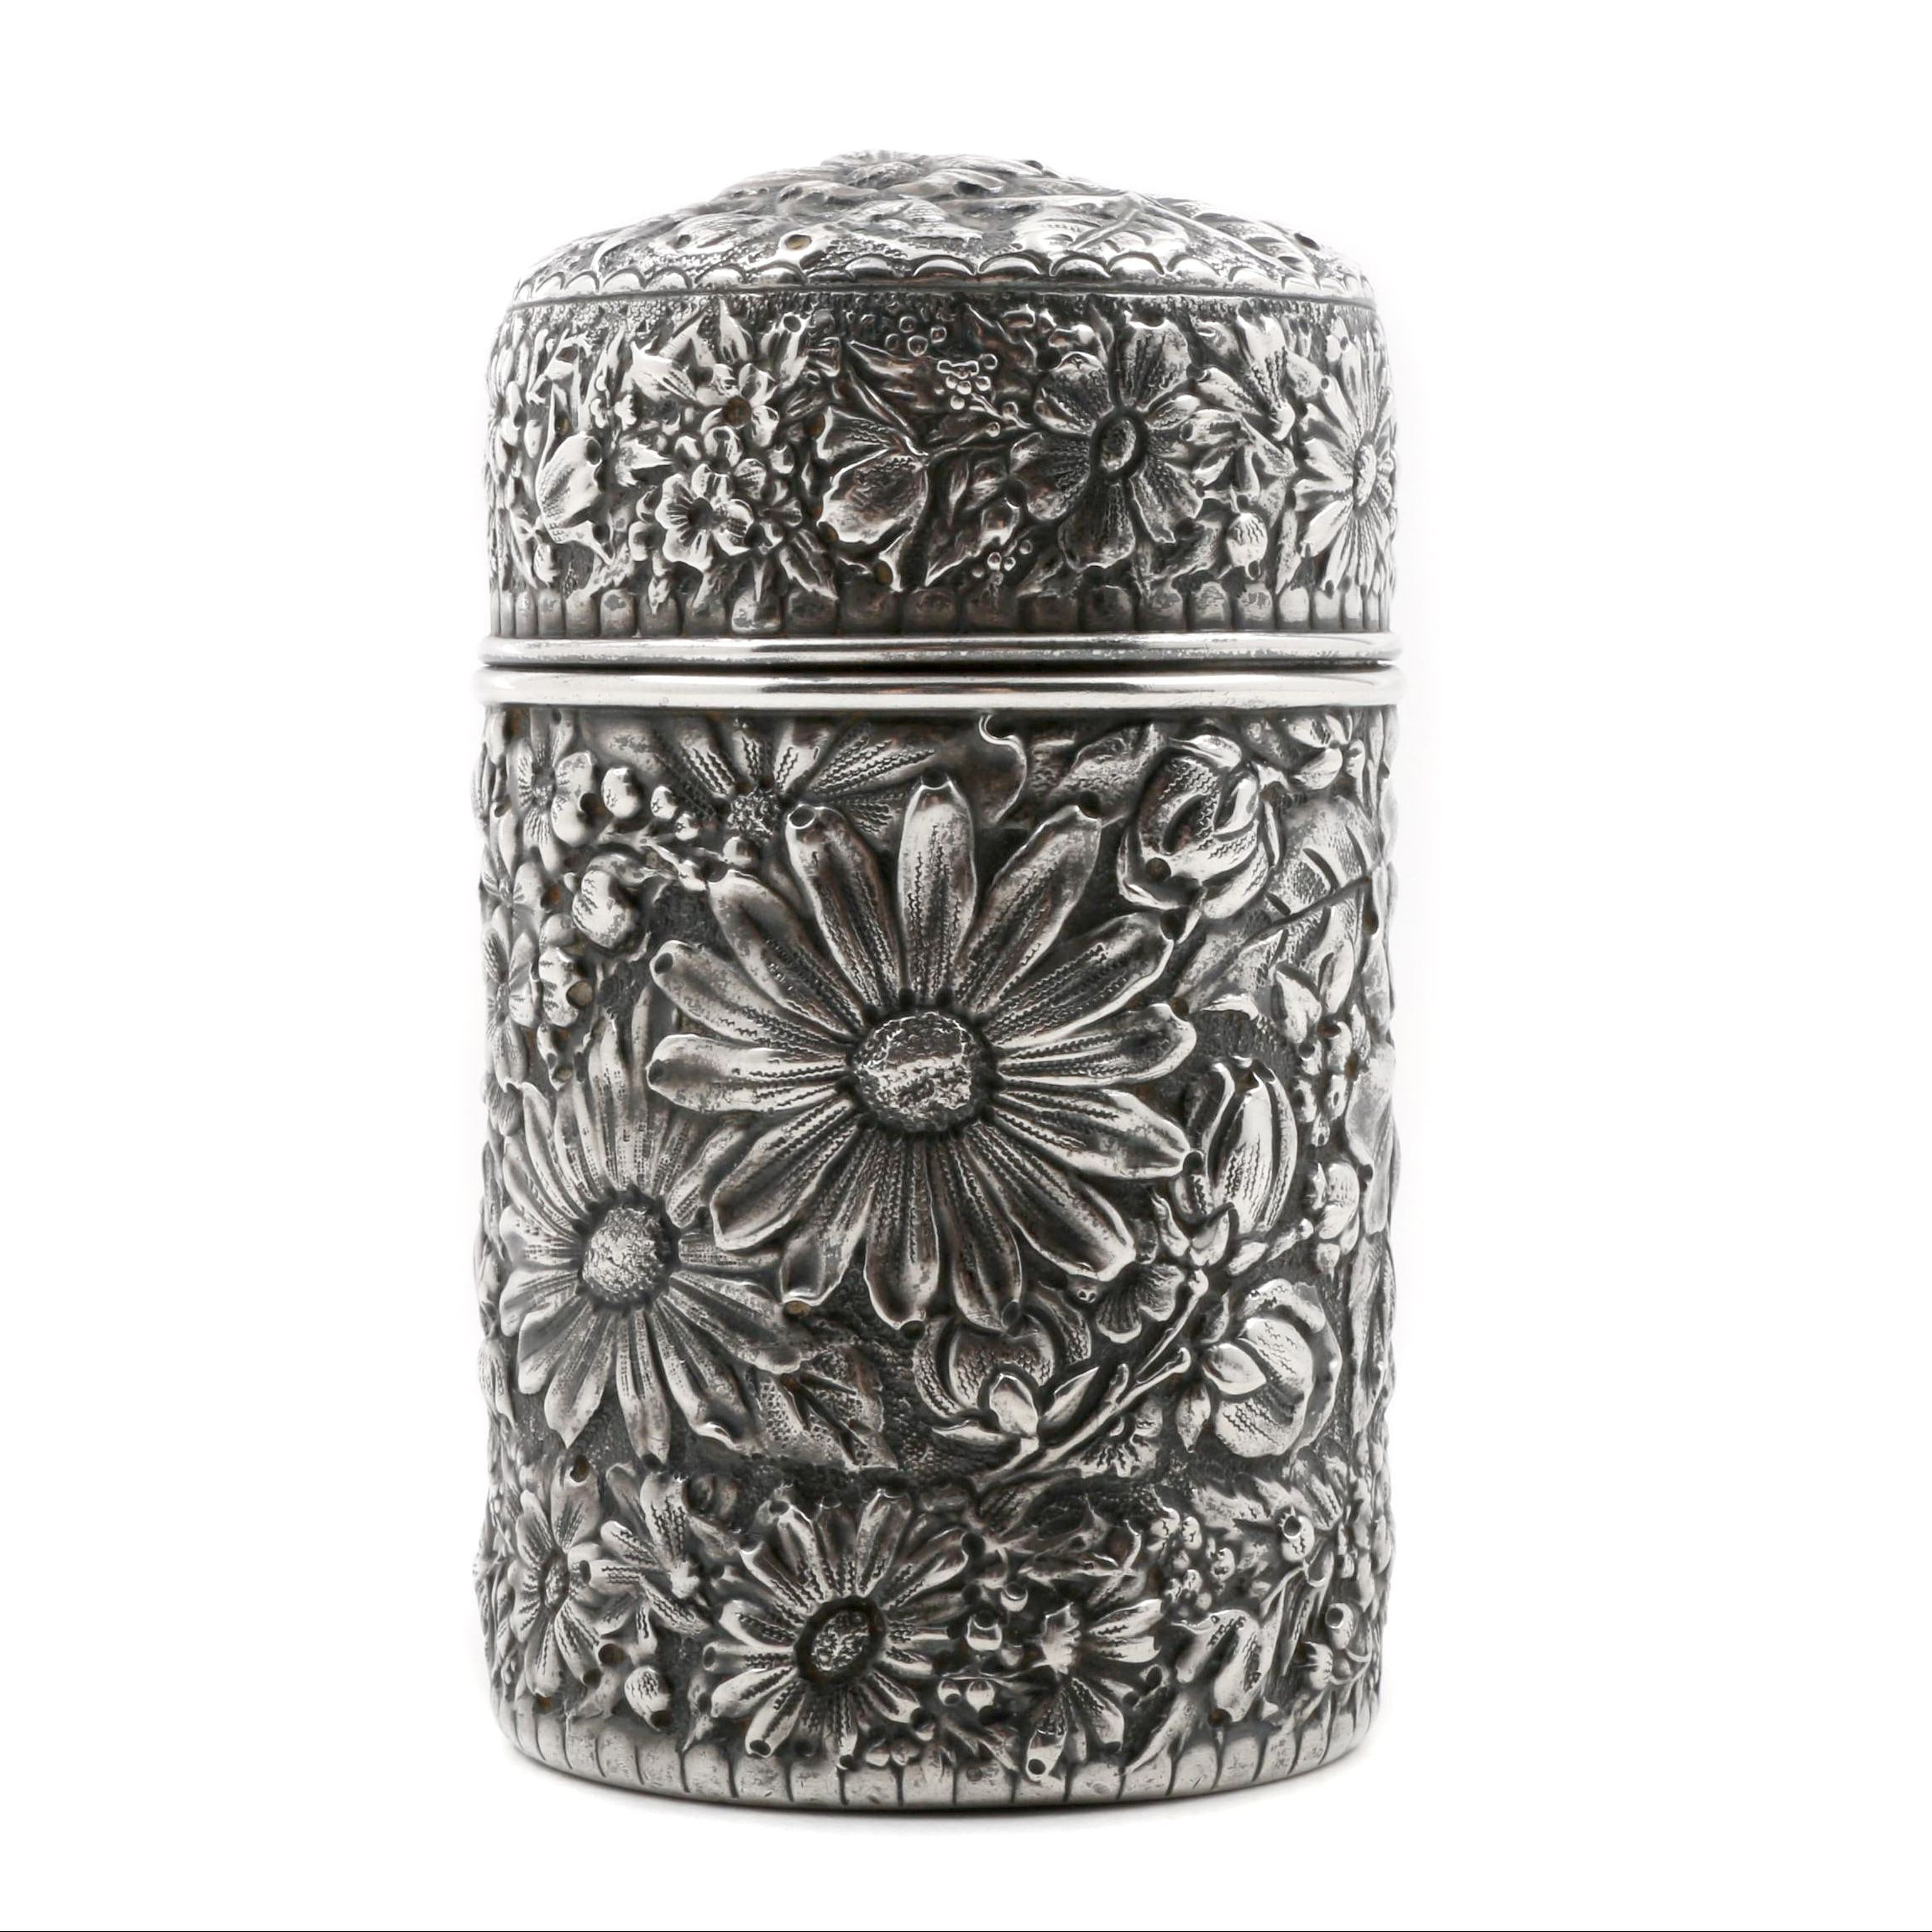 Antique Gorham Sterling Silver Repoussé Floral Cylindrical Box